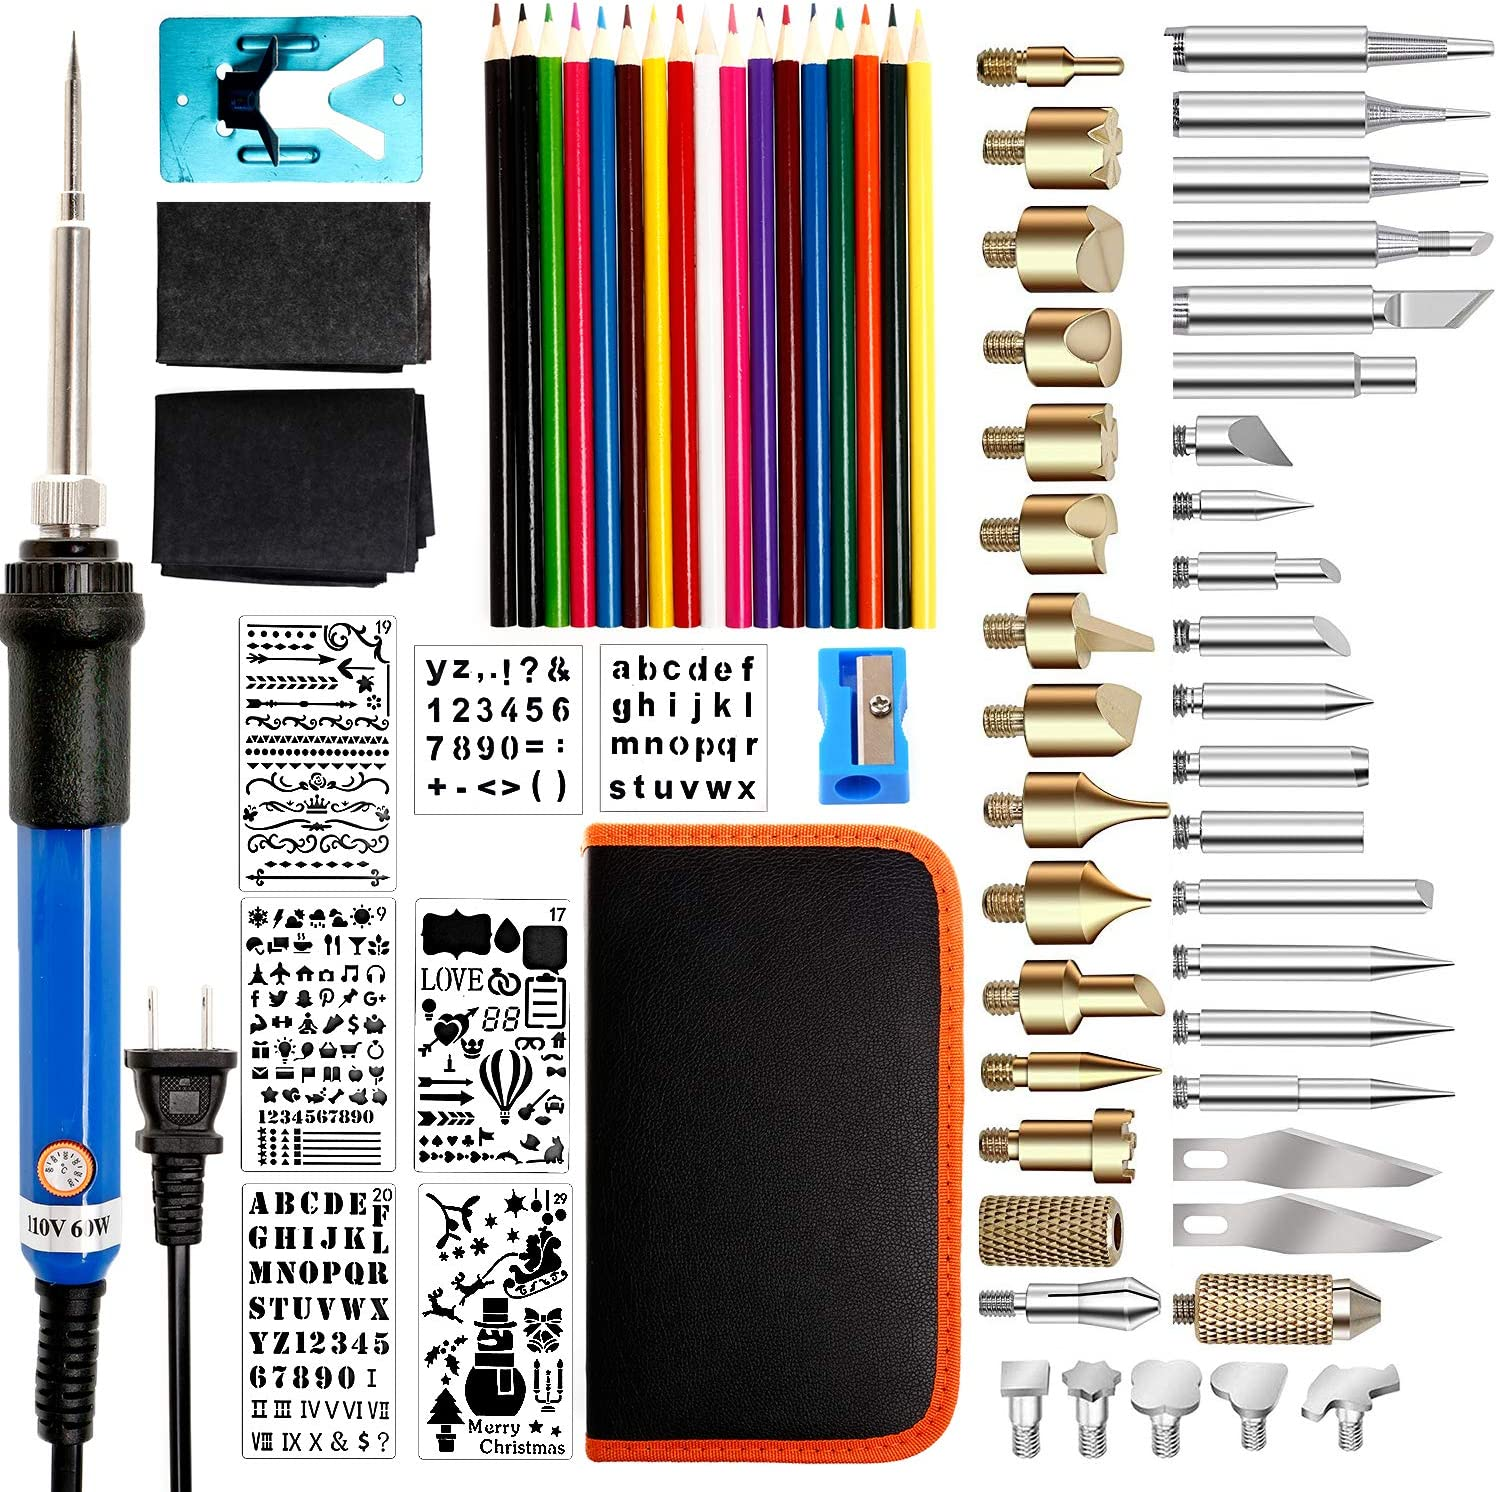 78PCS Wood Burning Kit, Pyrography Set with Adjustable Temperature Wood Burning Pen for Wood Burning/Carving/Embossing/Soldering - Soldering Tips + Stencil + Stand + Carrying Case